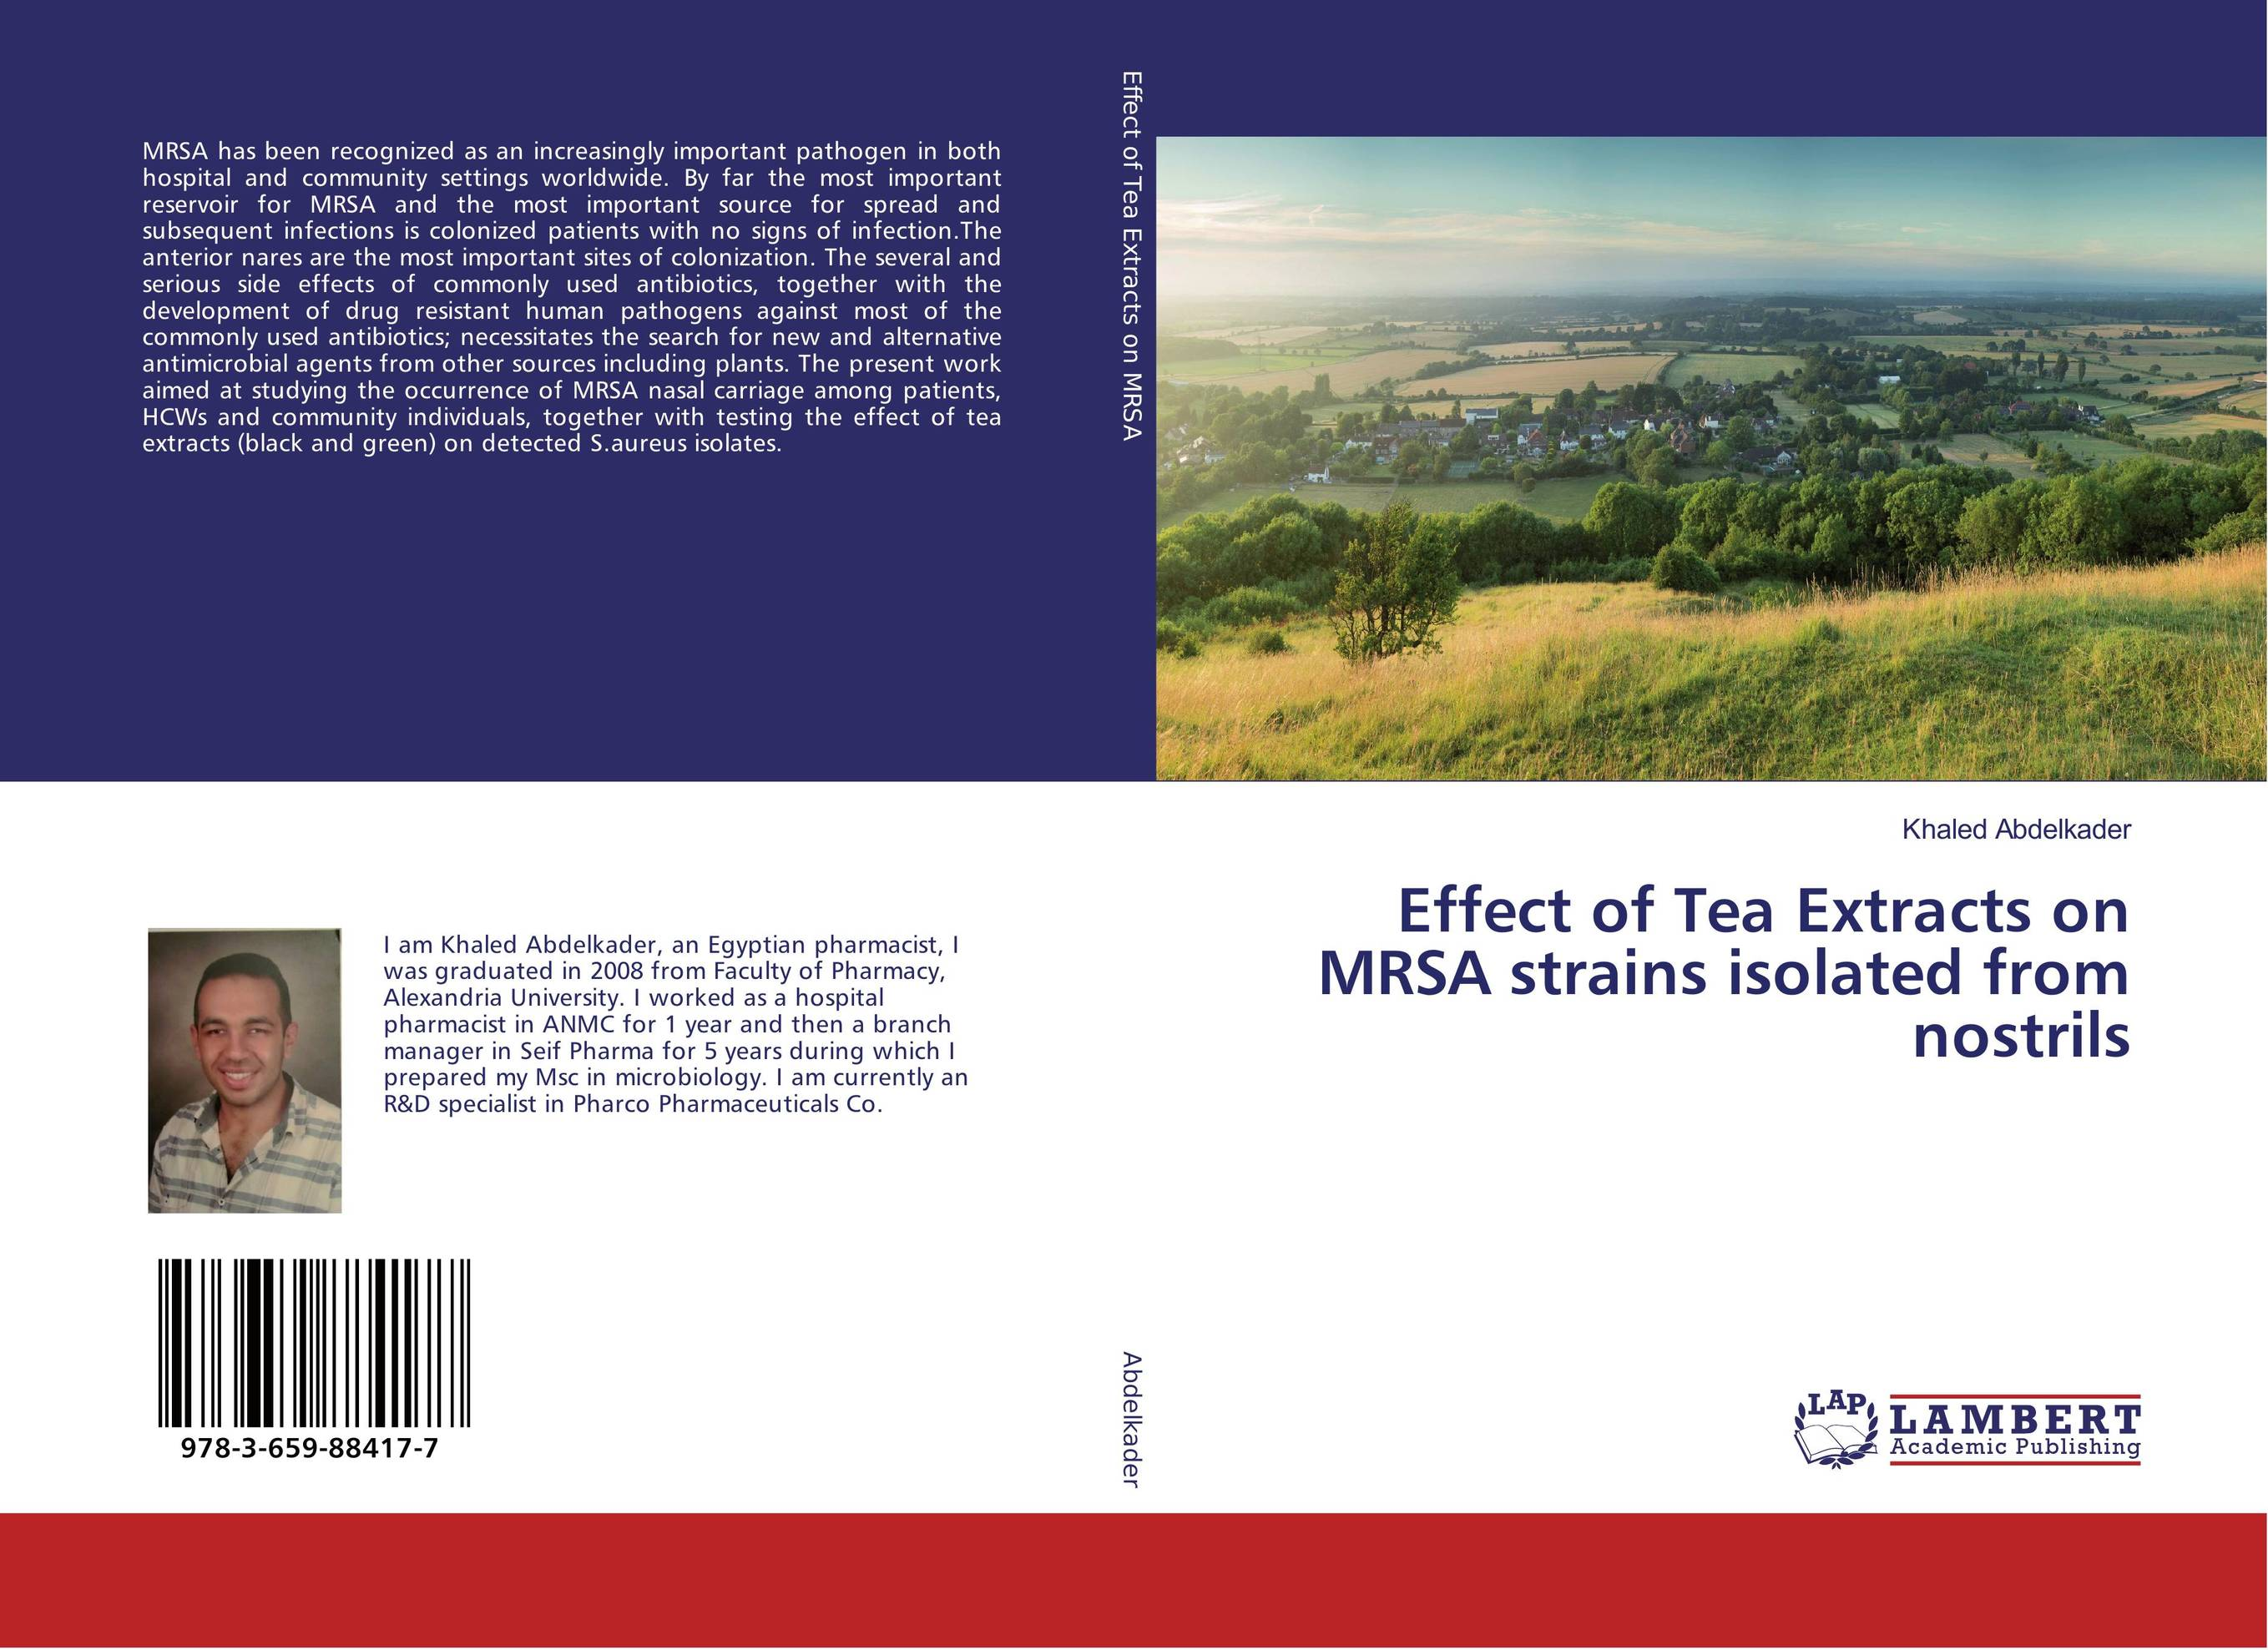 Effect of Tea Extracts on MRSA strains isolated from nostrils mrsa bacteraemia